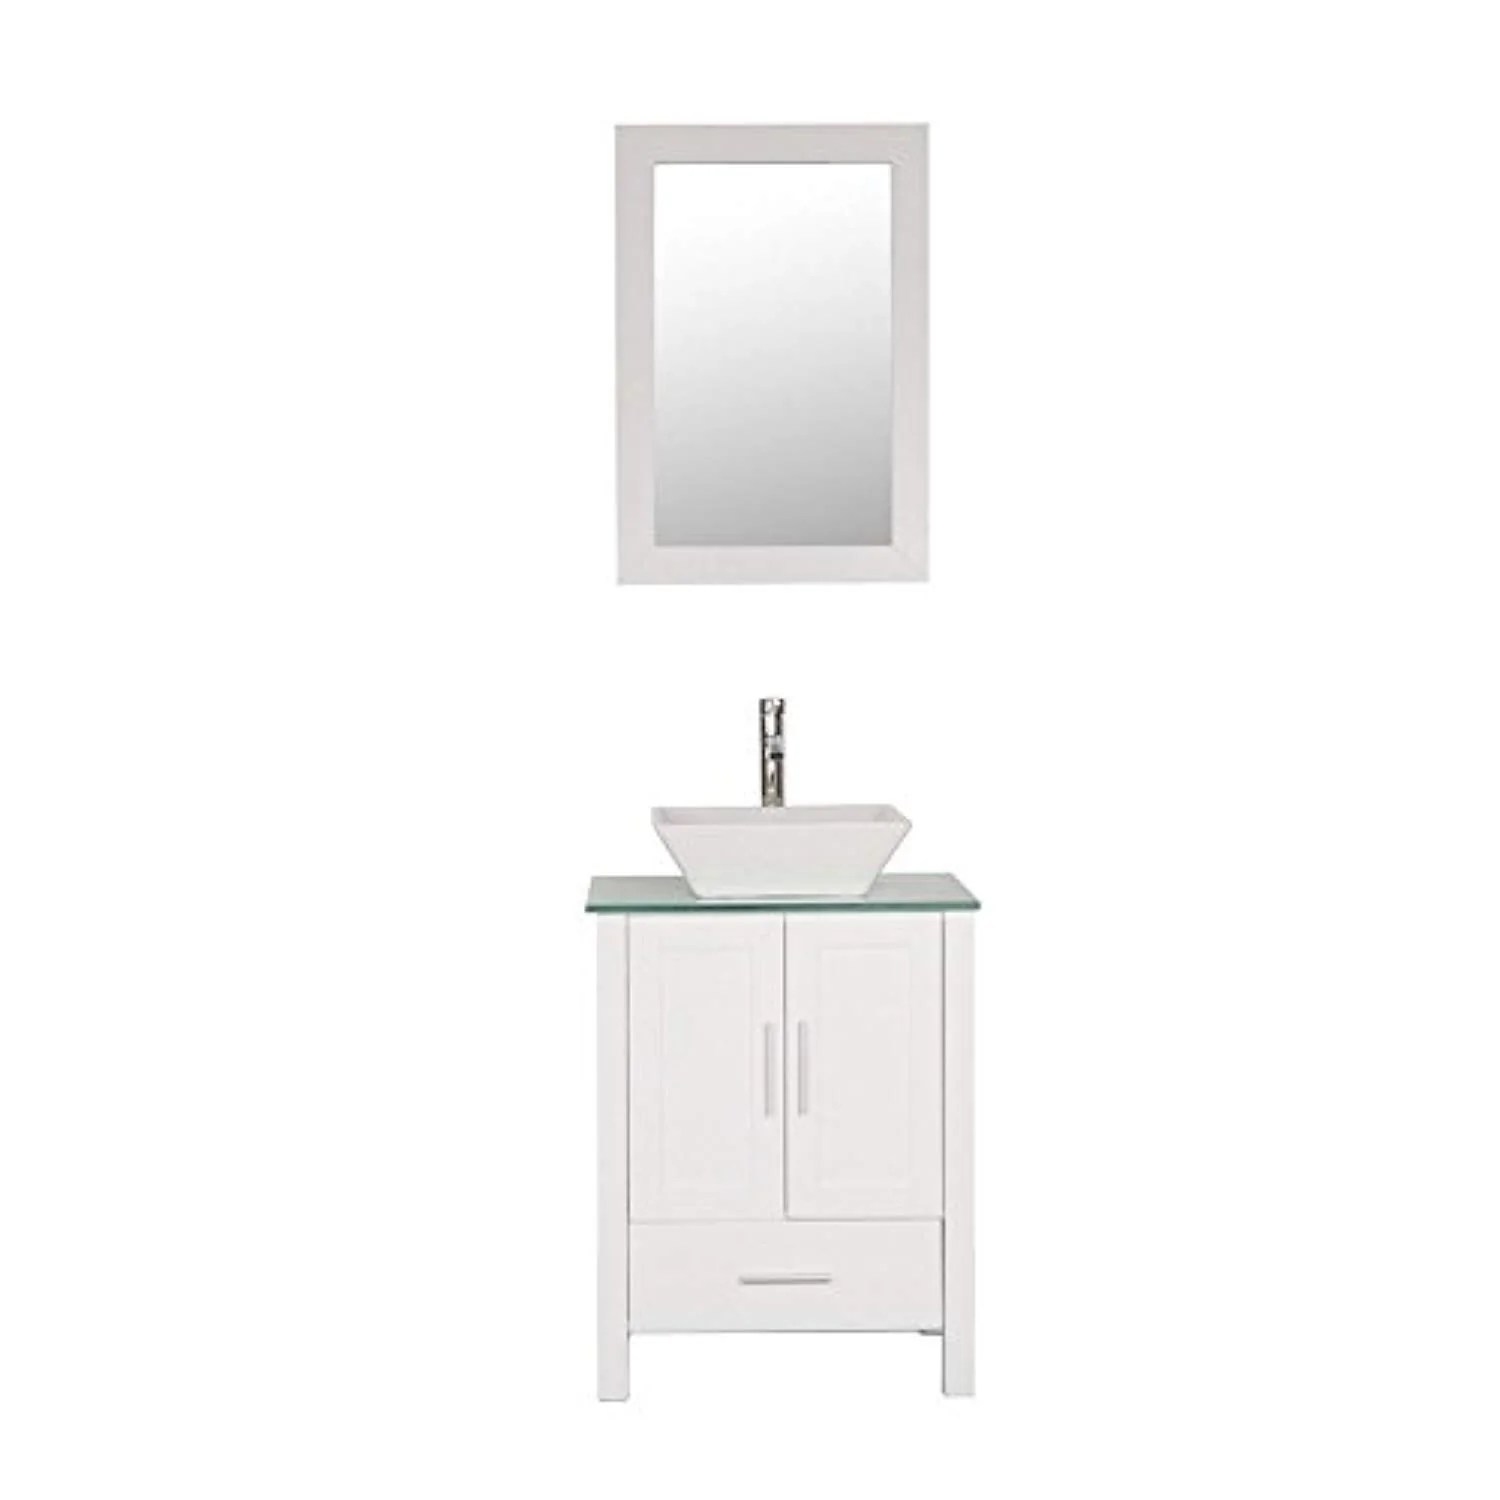 homecart 24 white bathroom vanity cabinet and sink combo modern mdf with mirror tempered glass counter top vessel sink faucet and pop up drain